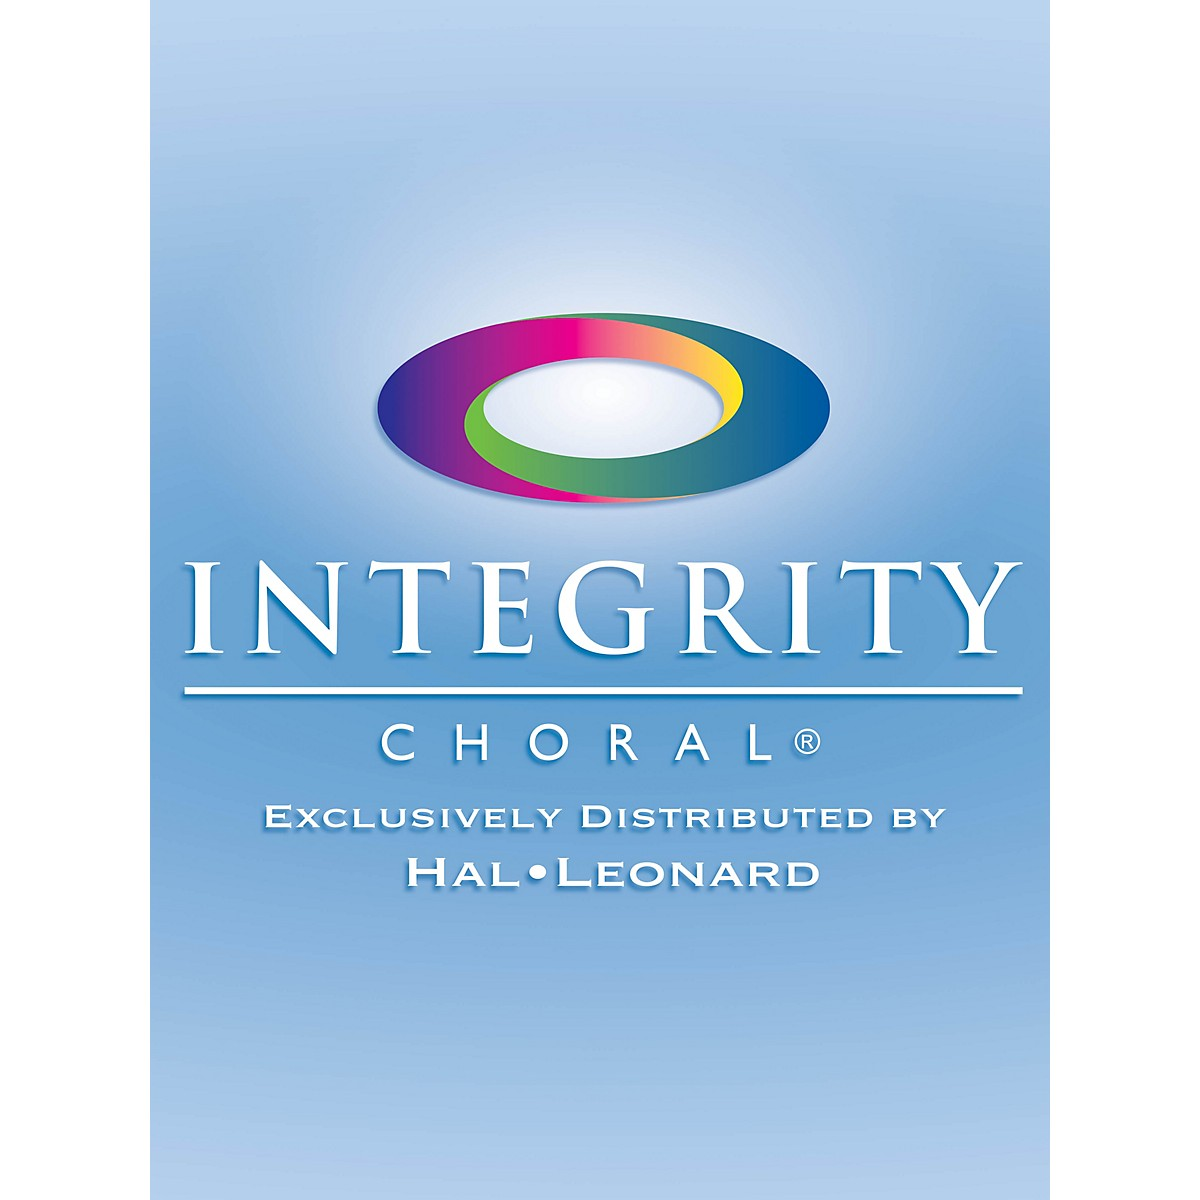 Integrity Music Welcome in this Place (10 Classic and Modern Worship Songs) CD 10-PAK Arranged by Dave Williamson